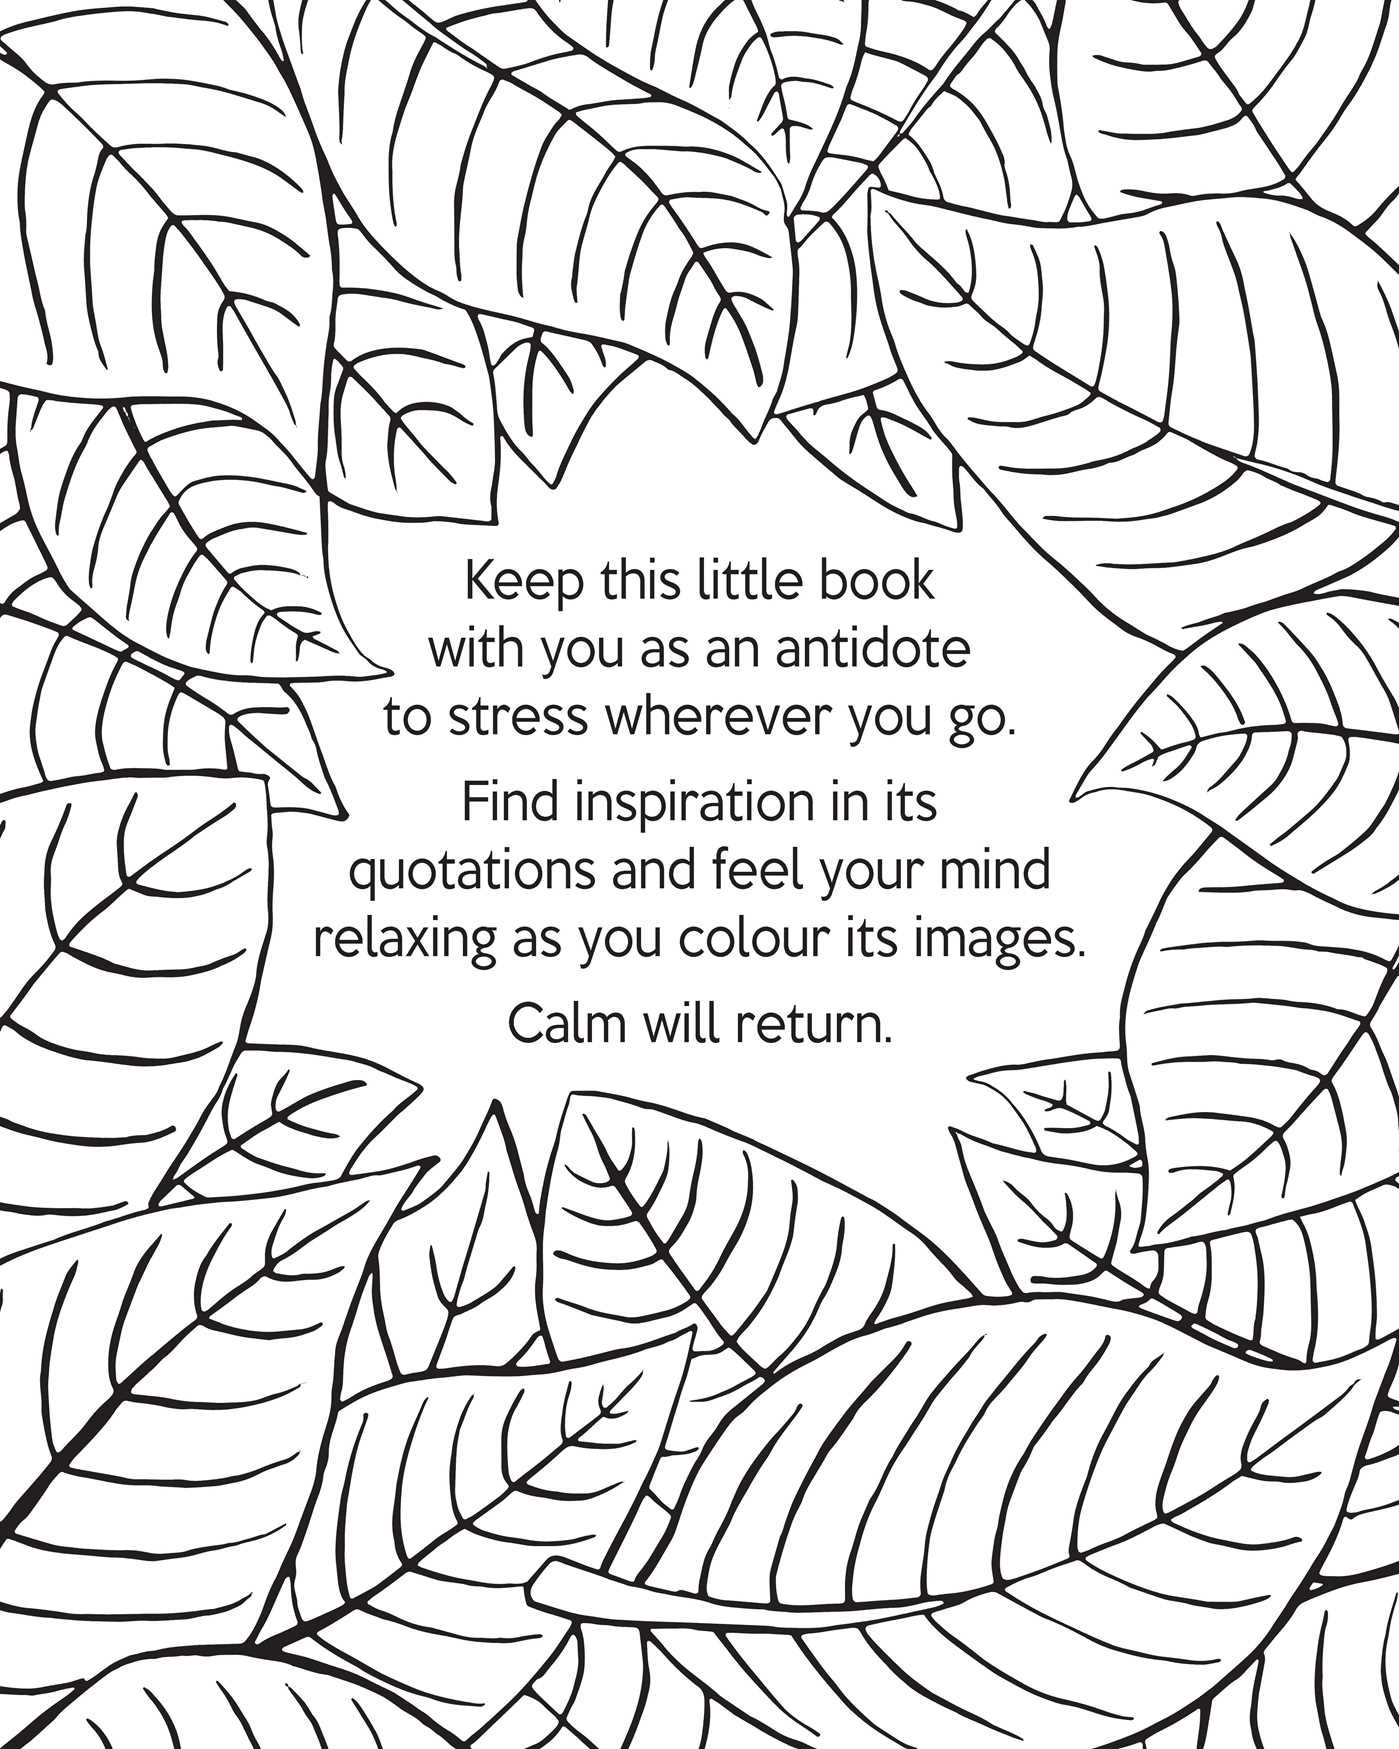 Amazon The Little Book of Calm Coloring Portable Relaxation